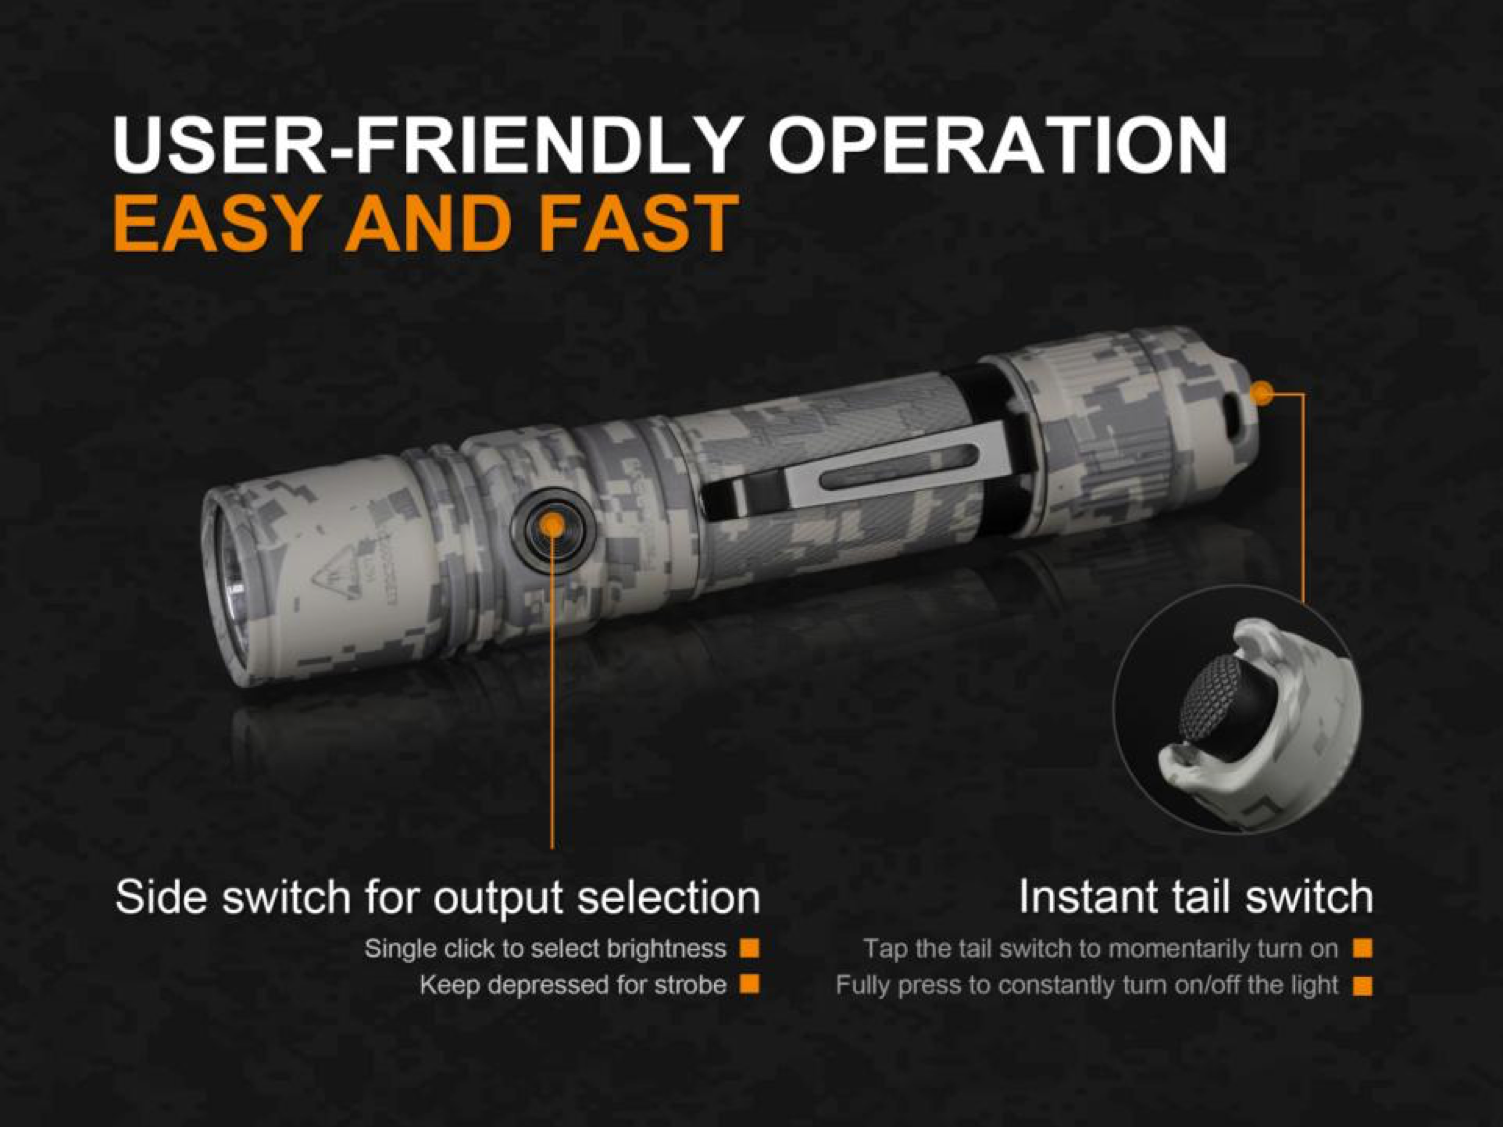 Fenix PD35, Fenix PD35 V2.0 Camo Edition, 1000 Lumens Tactical LED Flashlight, Compact Powerful Torch for Work Outdoor and Law Enforcement Use